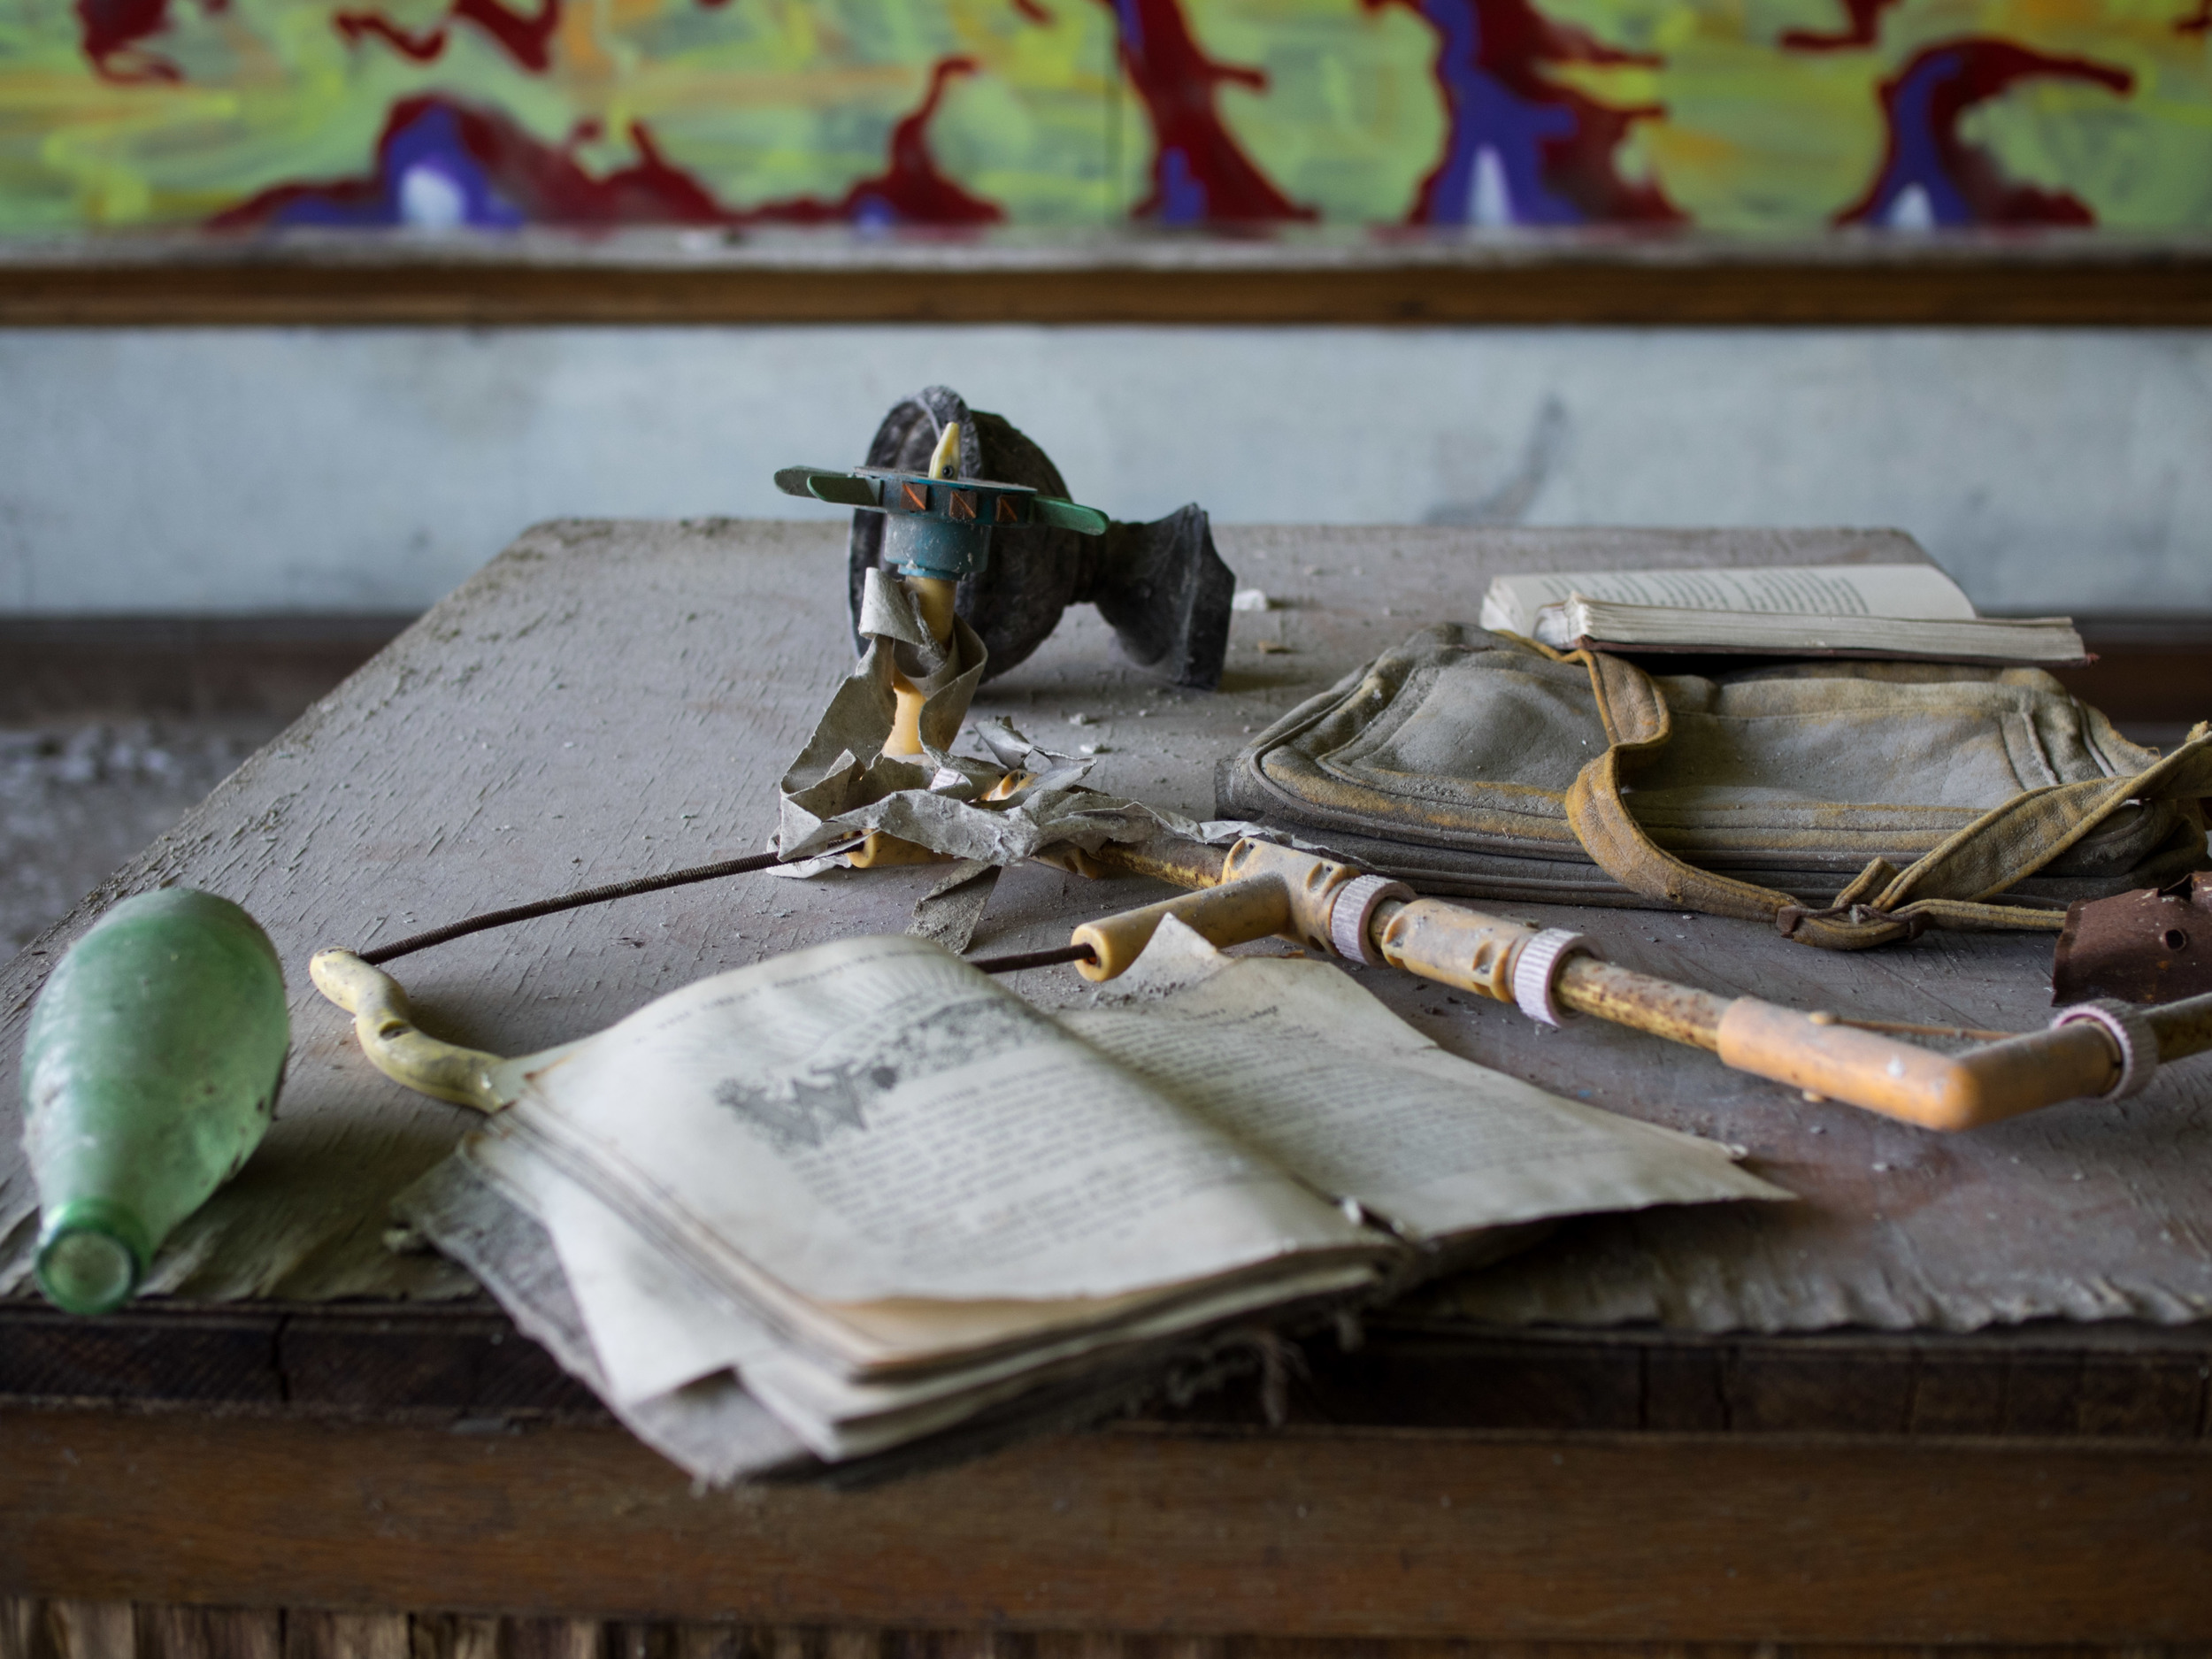 Every classroom in the school was a scene of dismay. It was confusing to try and understand how some things looked like they had never been moved, and others were obviously places of recent activity.